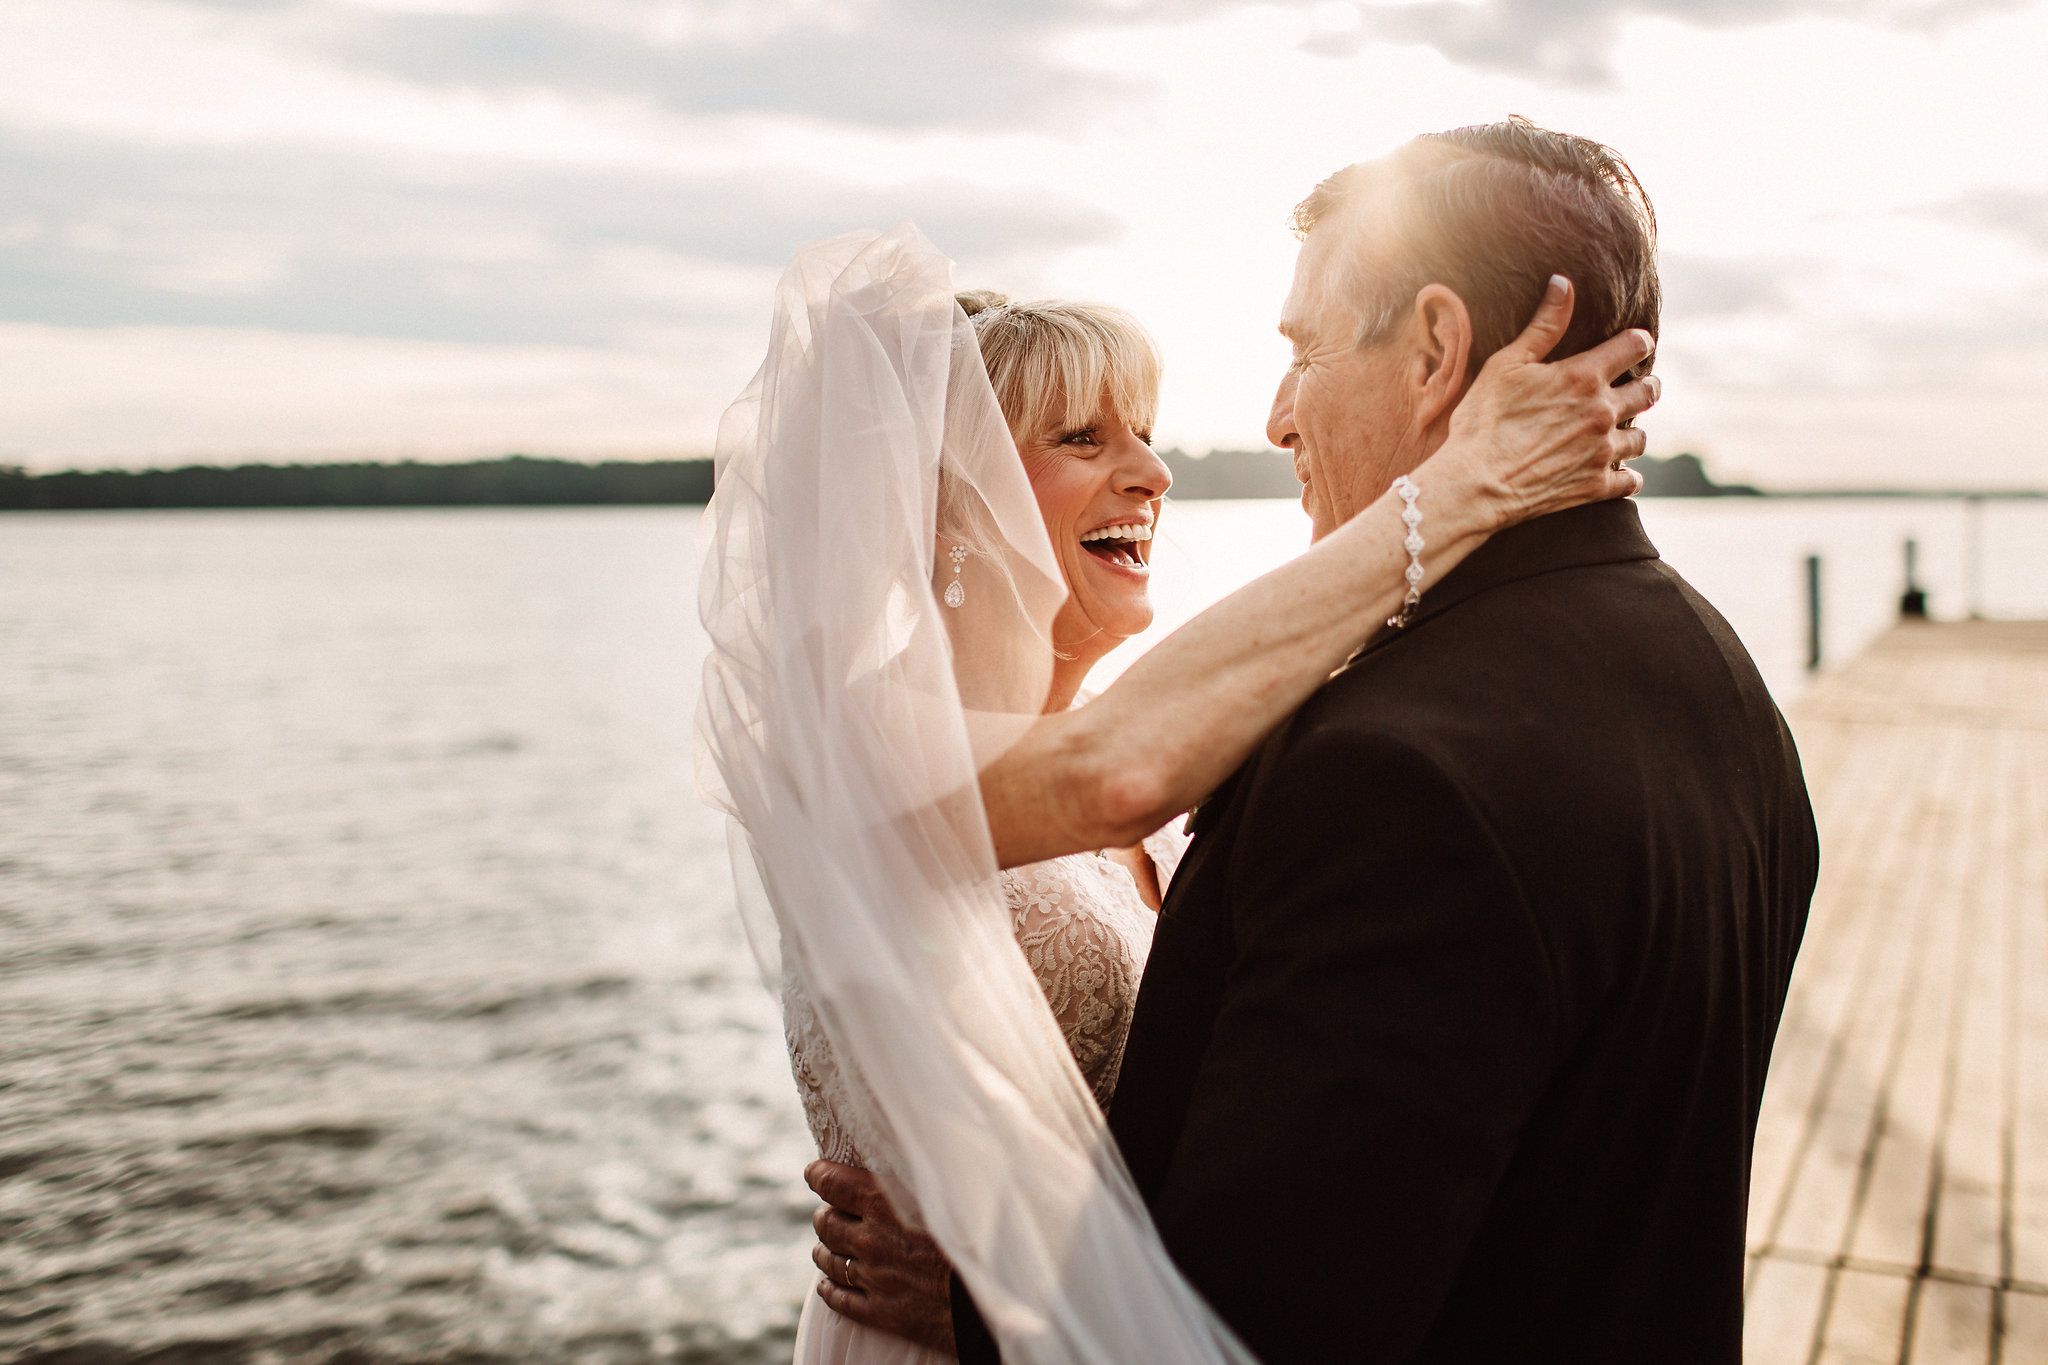 Congratulations, Sherri & Todd! It was a pleasure capturing this special time for the two of you with your closest family & friends.  Thank you to all vendors: Venue & Catering - The Boathouse  Event Planner - Susan with The Boathouse Florist -  Flowers Make Scents  Cake & Cupcakes - Pearls Cupcake Shoppe